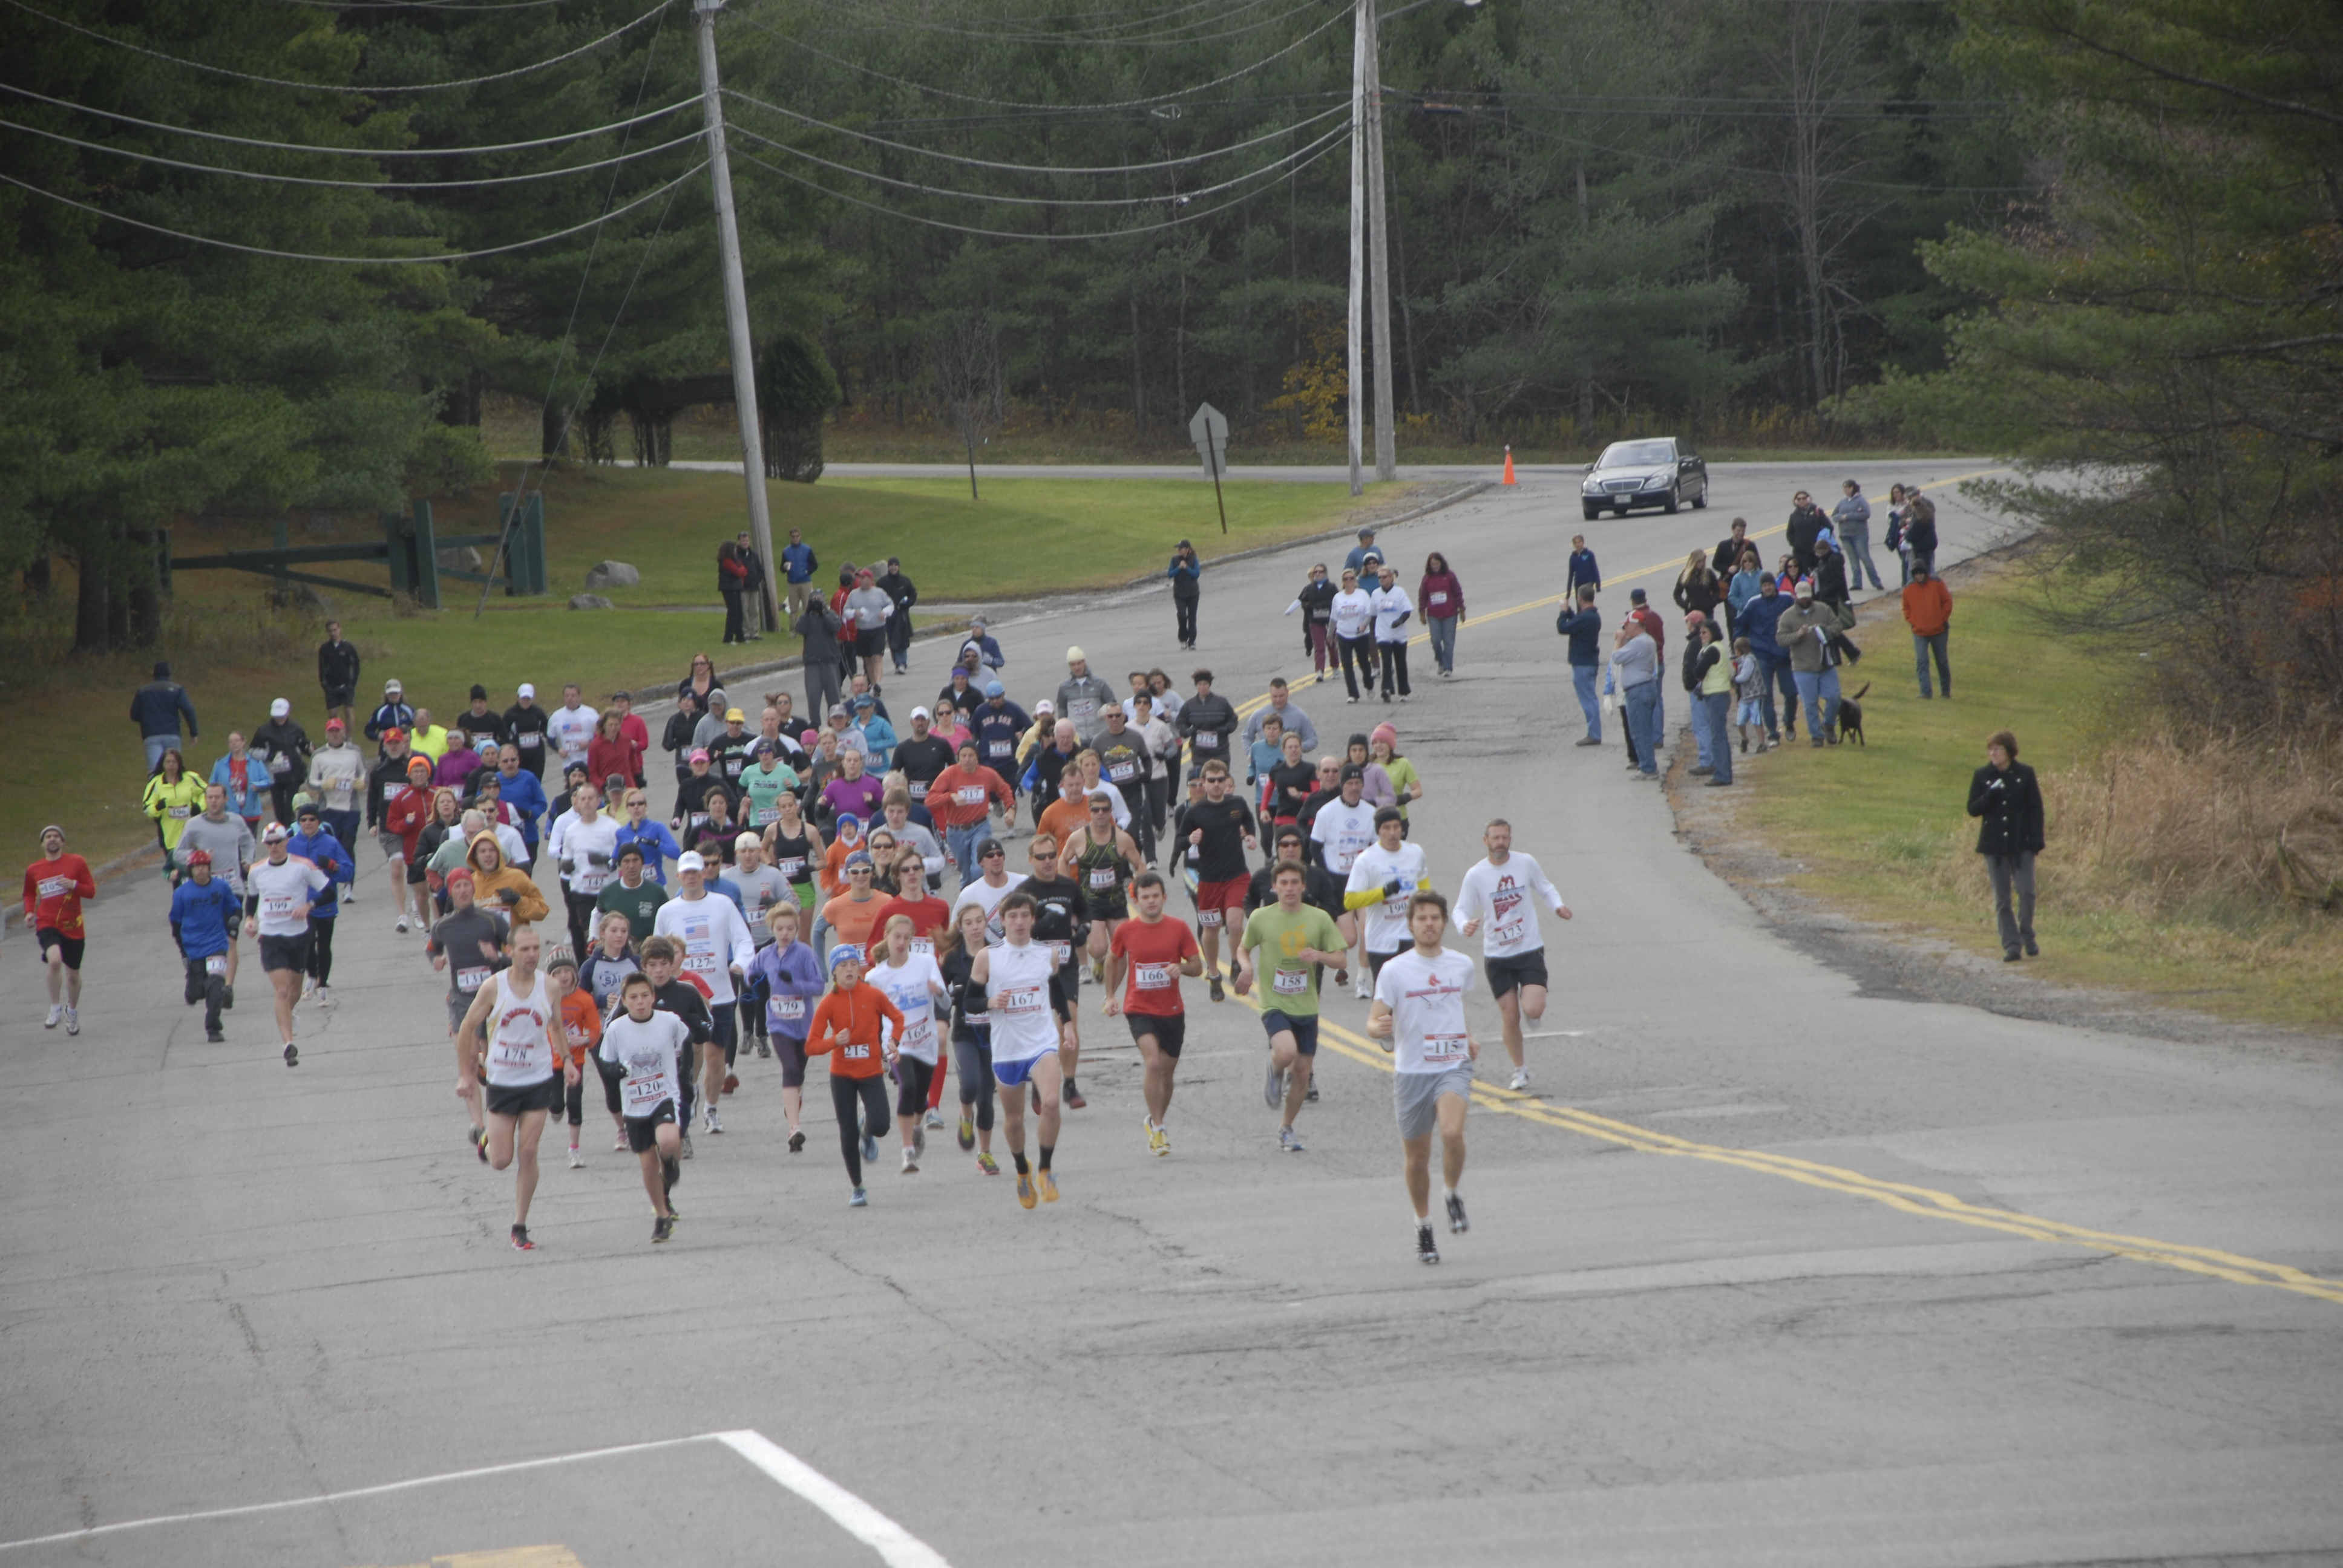 Courtesy of David Colby Young & Maine Running Photos